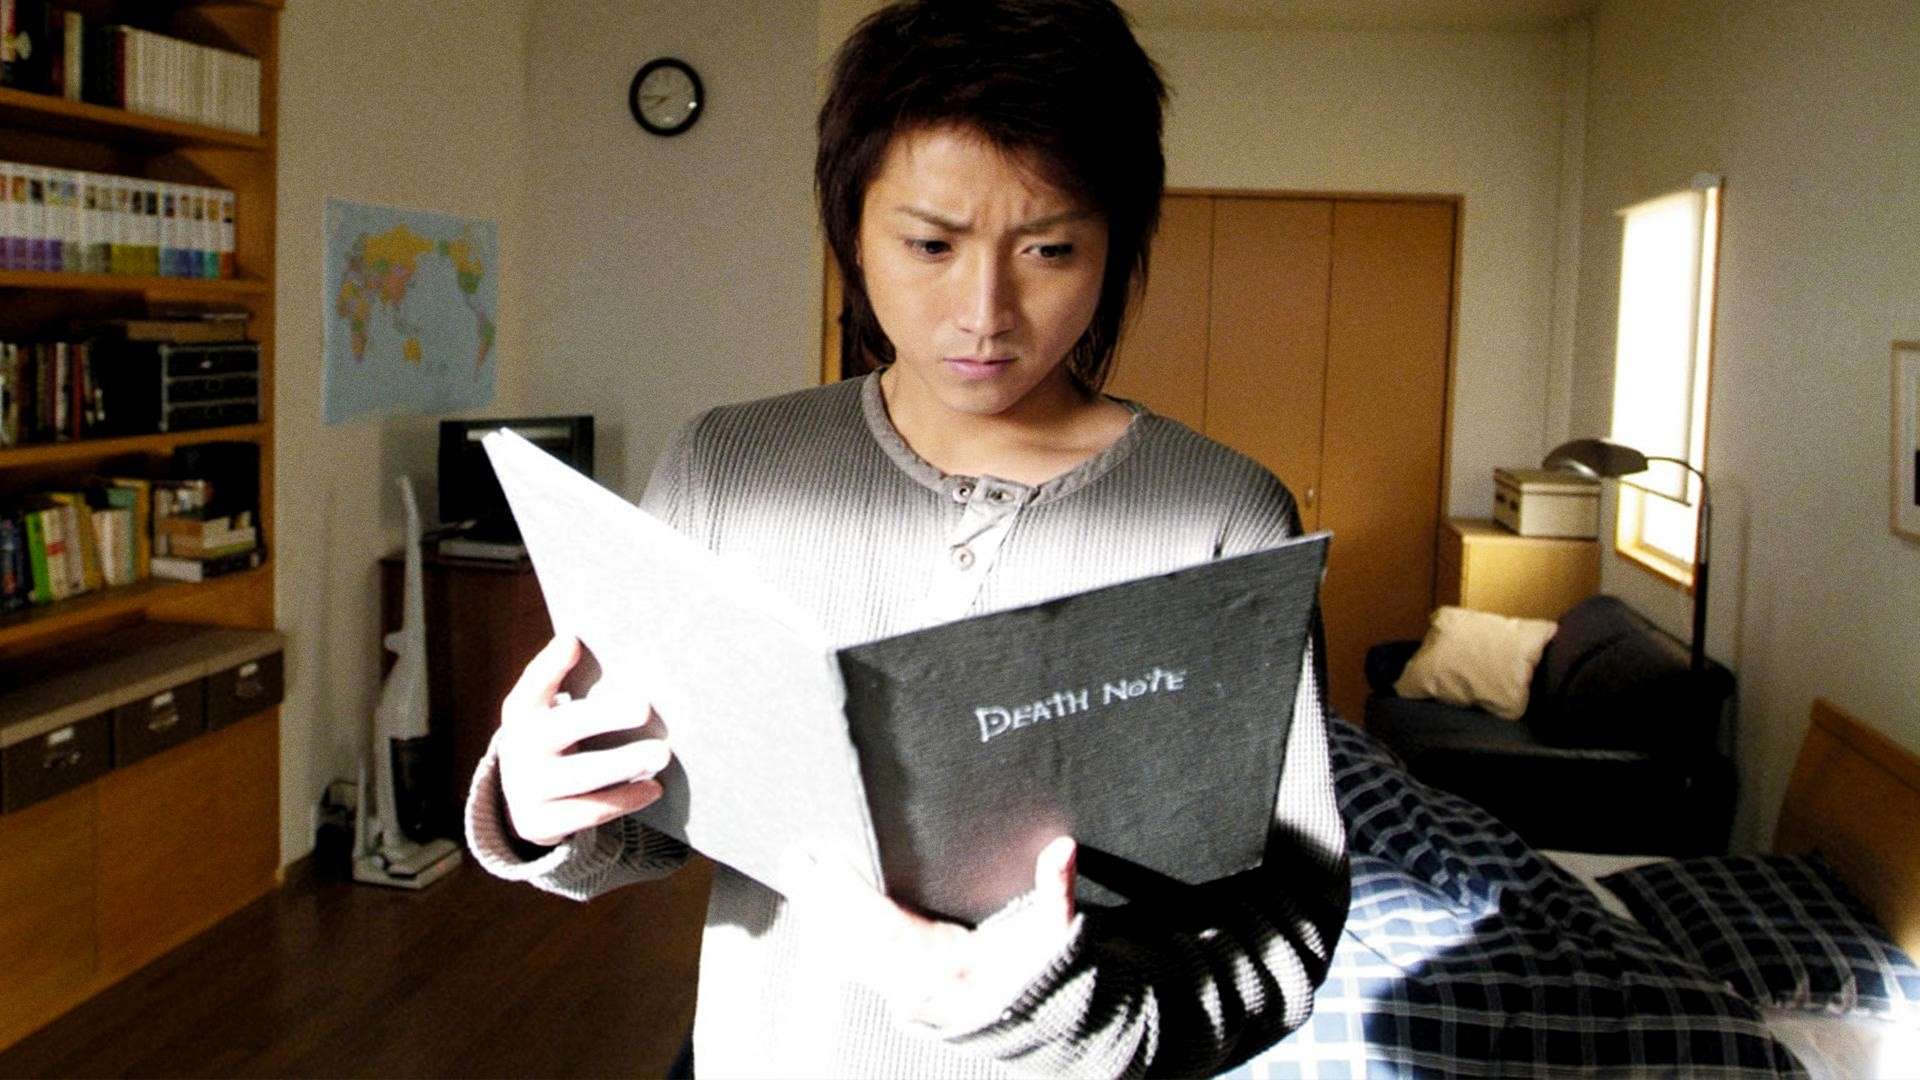 Death Note: Le film